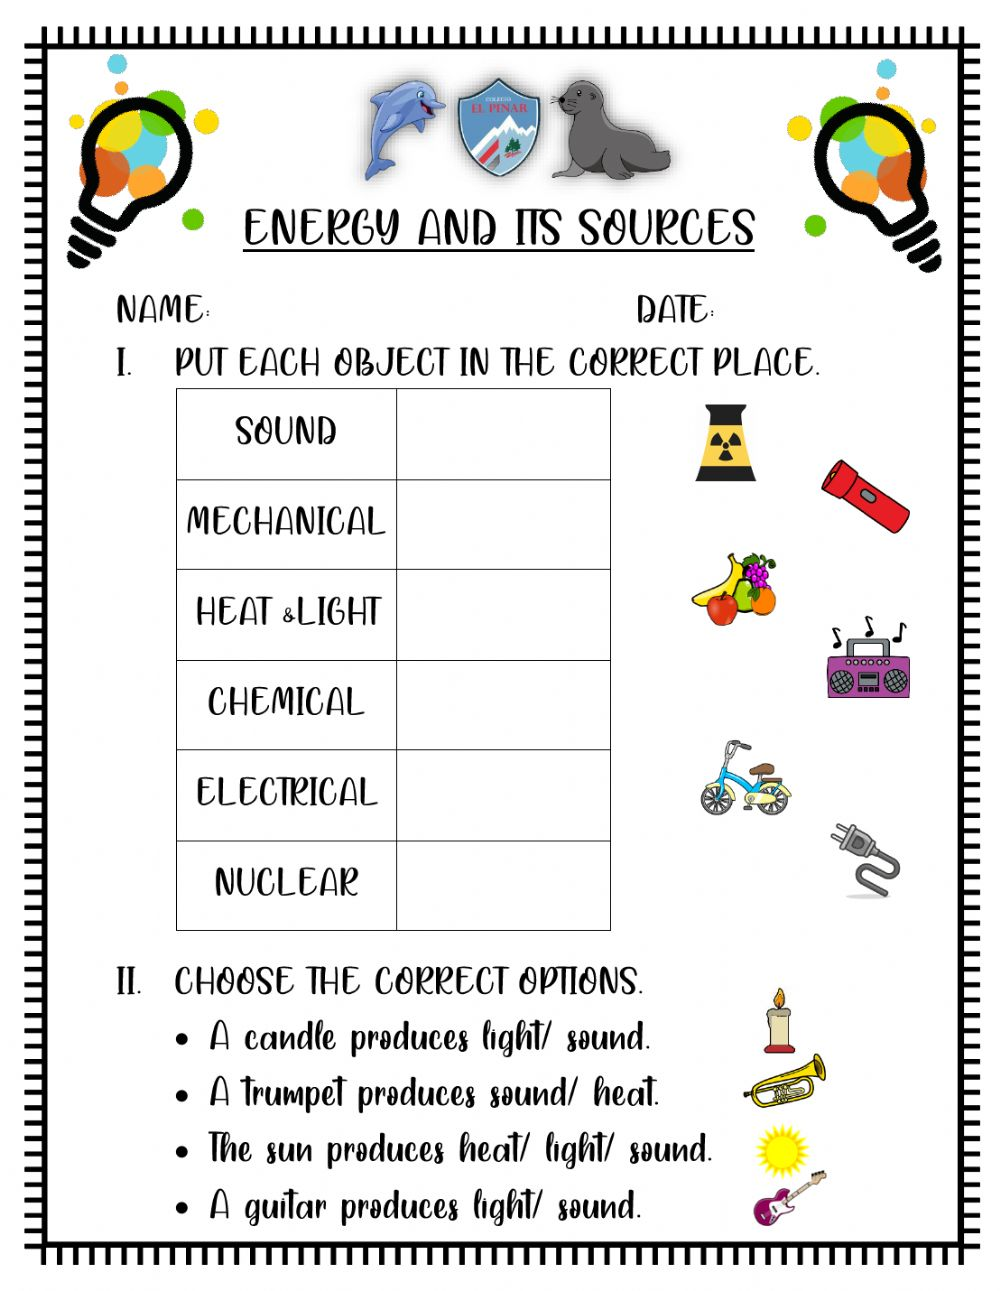 medium resolution of Energy and its sources worksheet